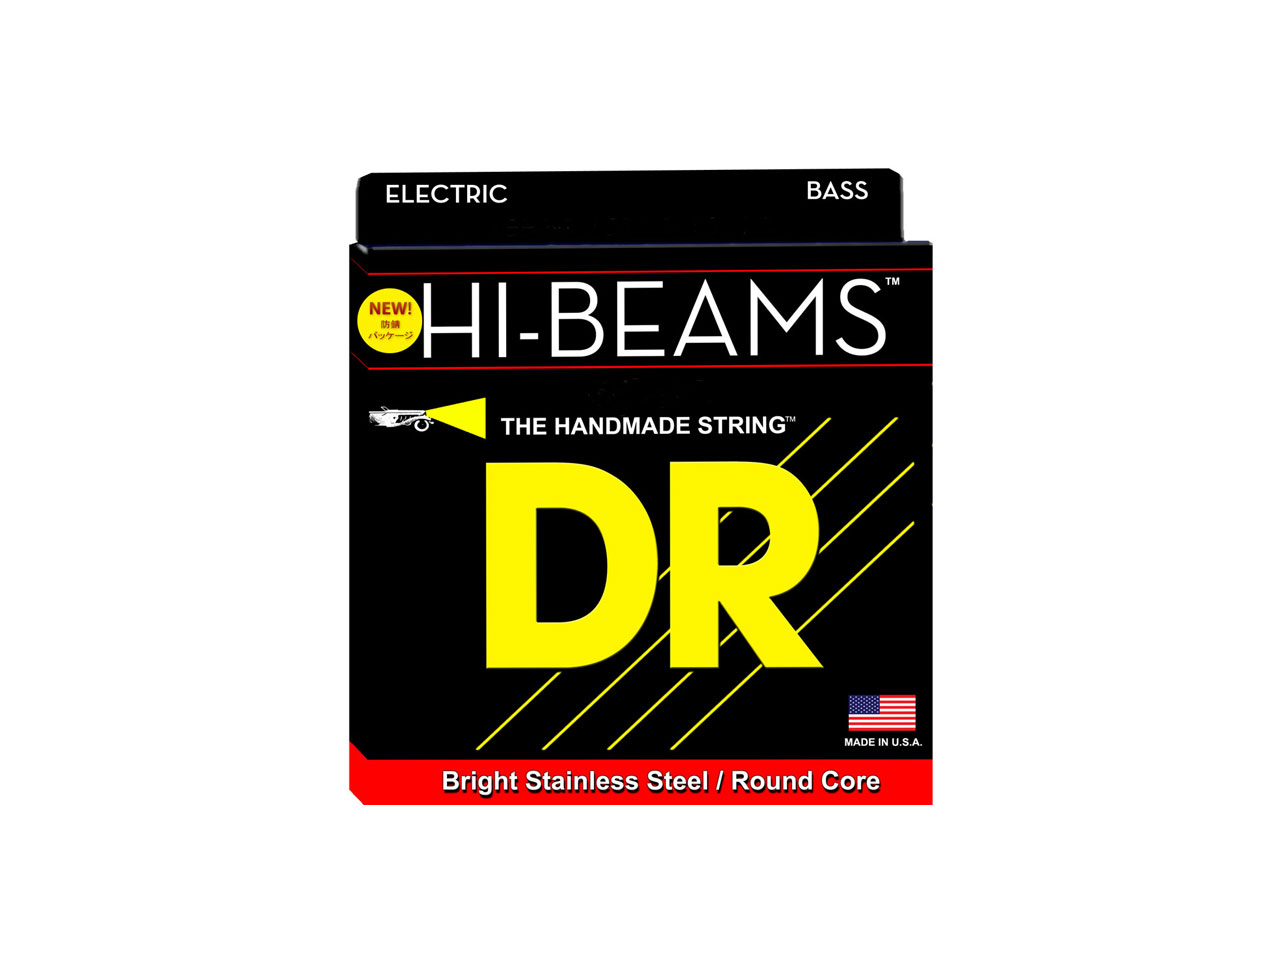 DR Strings HI-BEAM 5STRING MEDIUM/Extra-long Scale (LMR5-45)